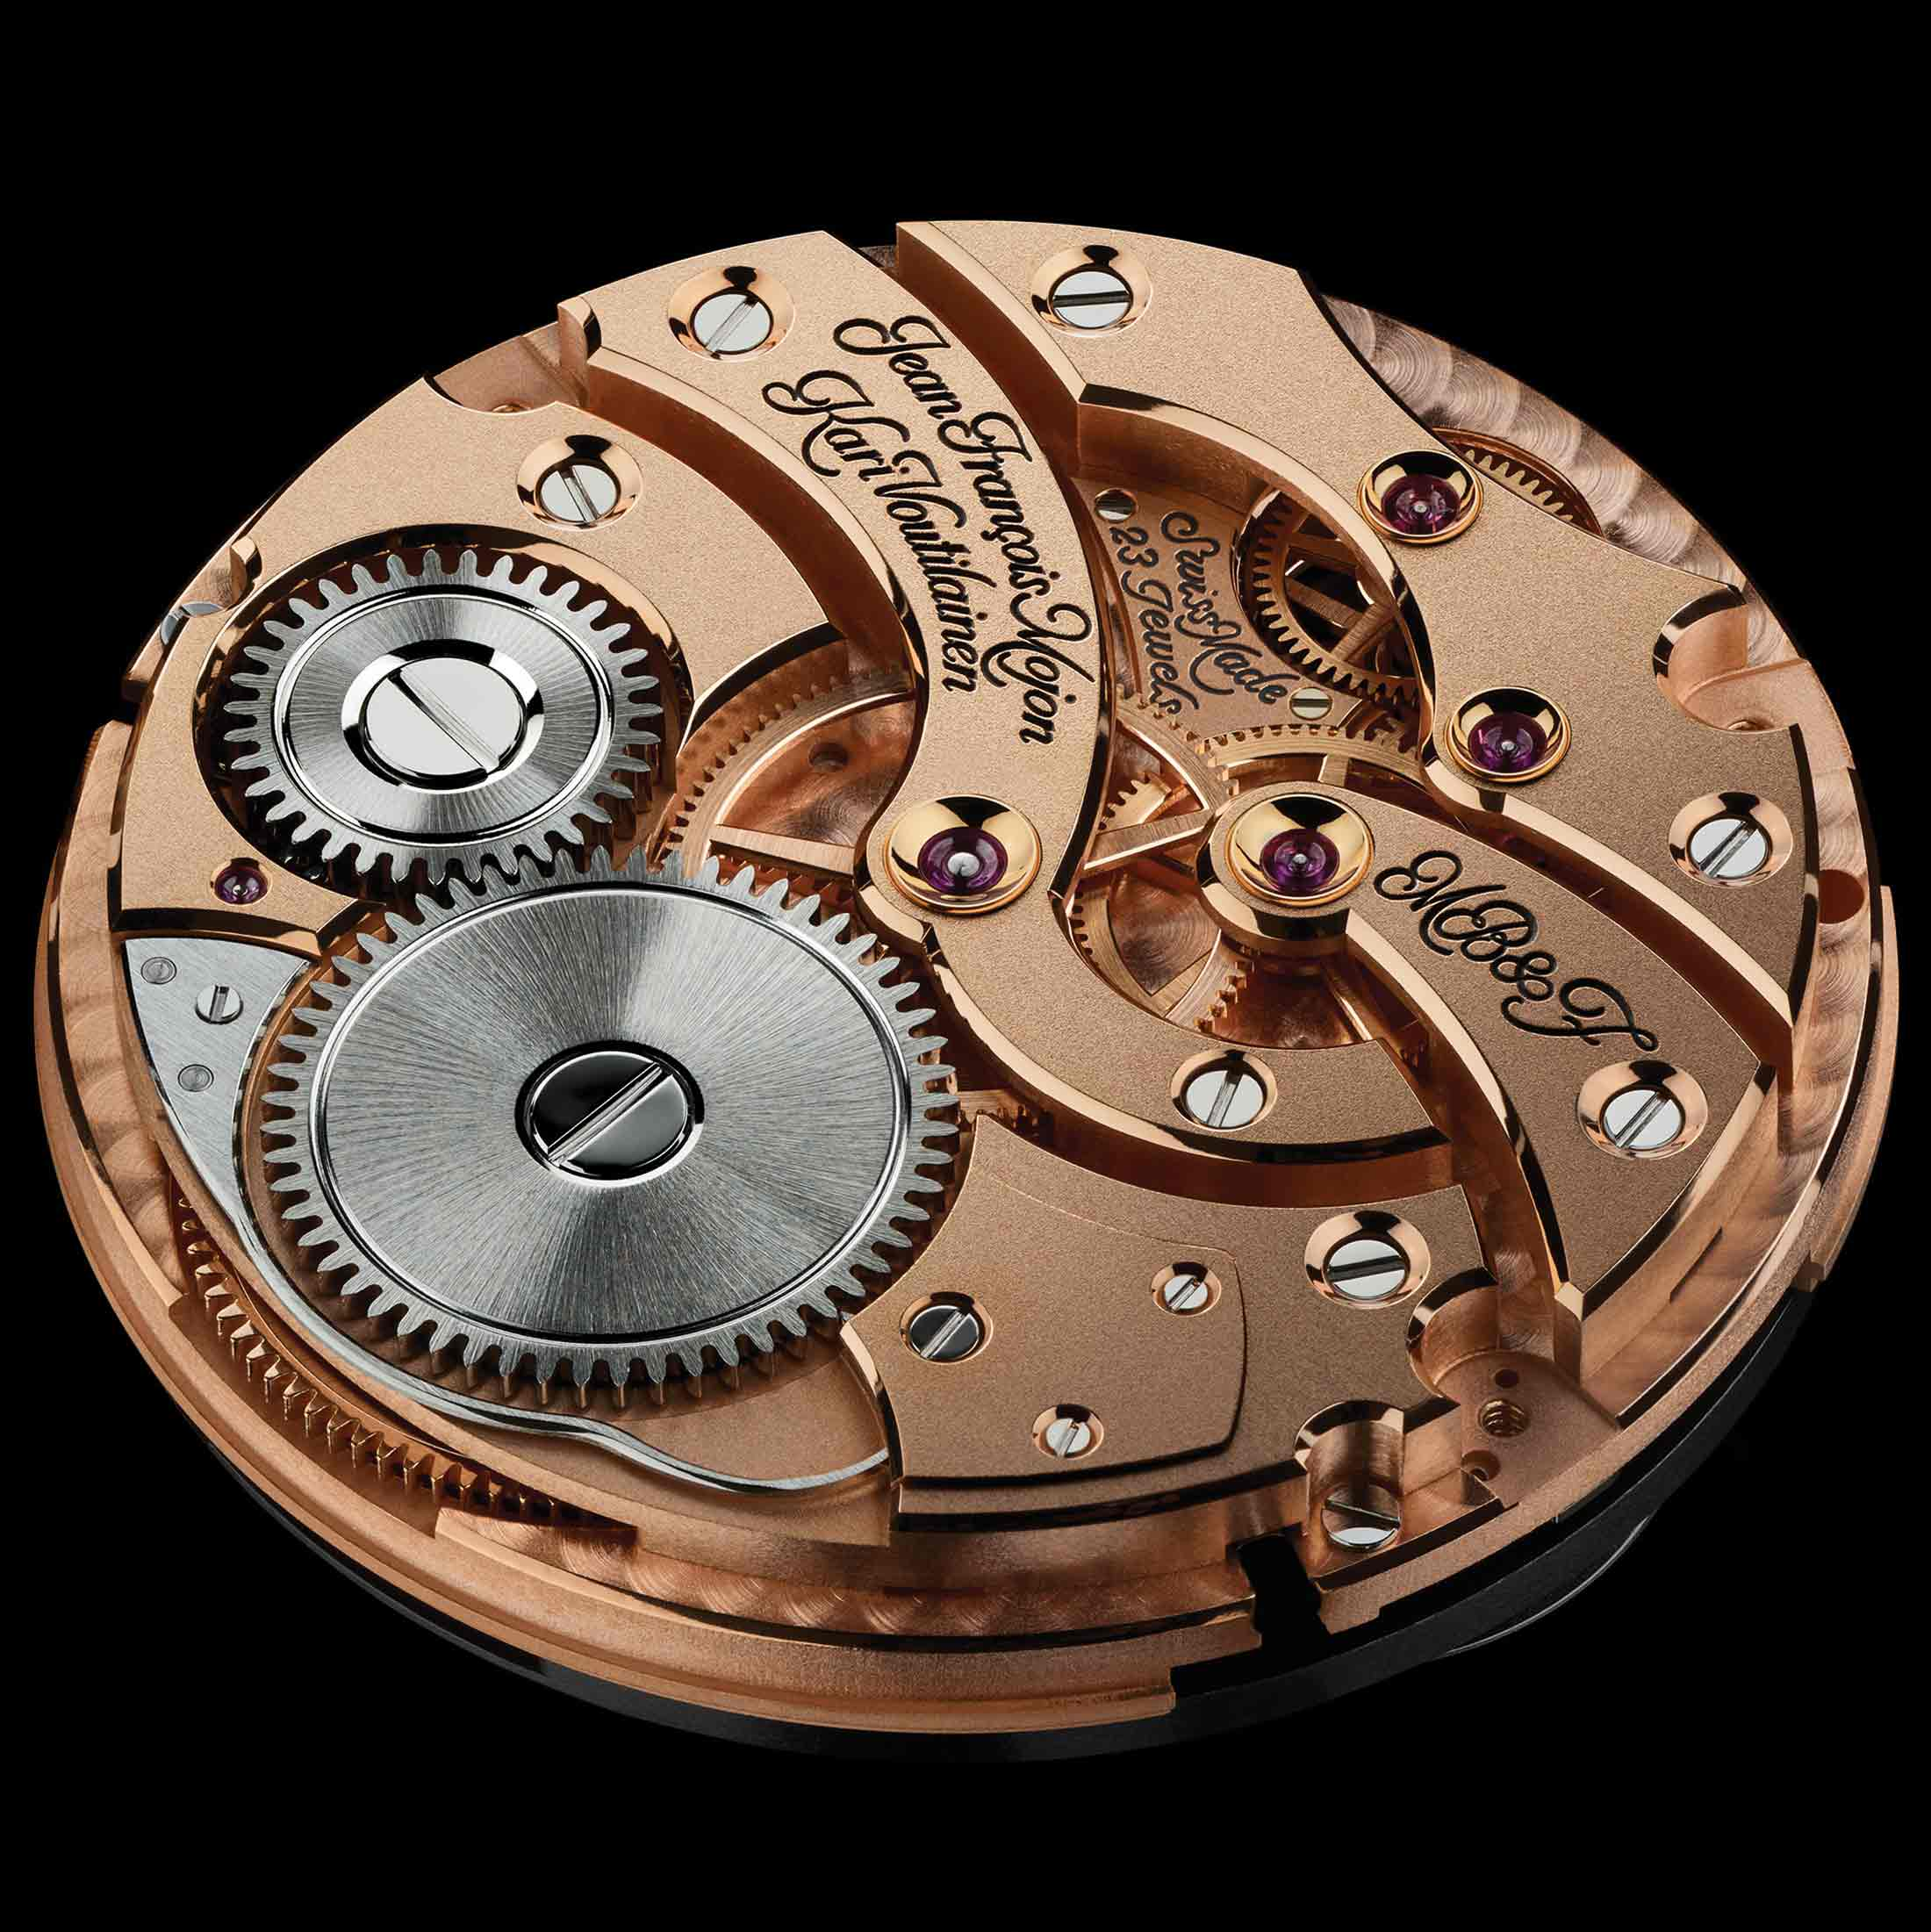 MB&F Caliber LM1 Silberstein Movement